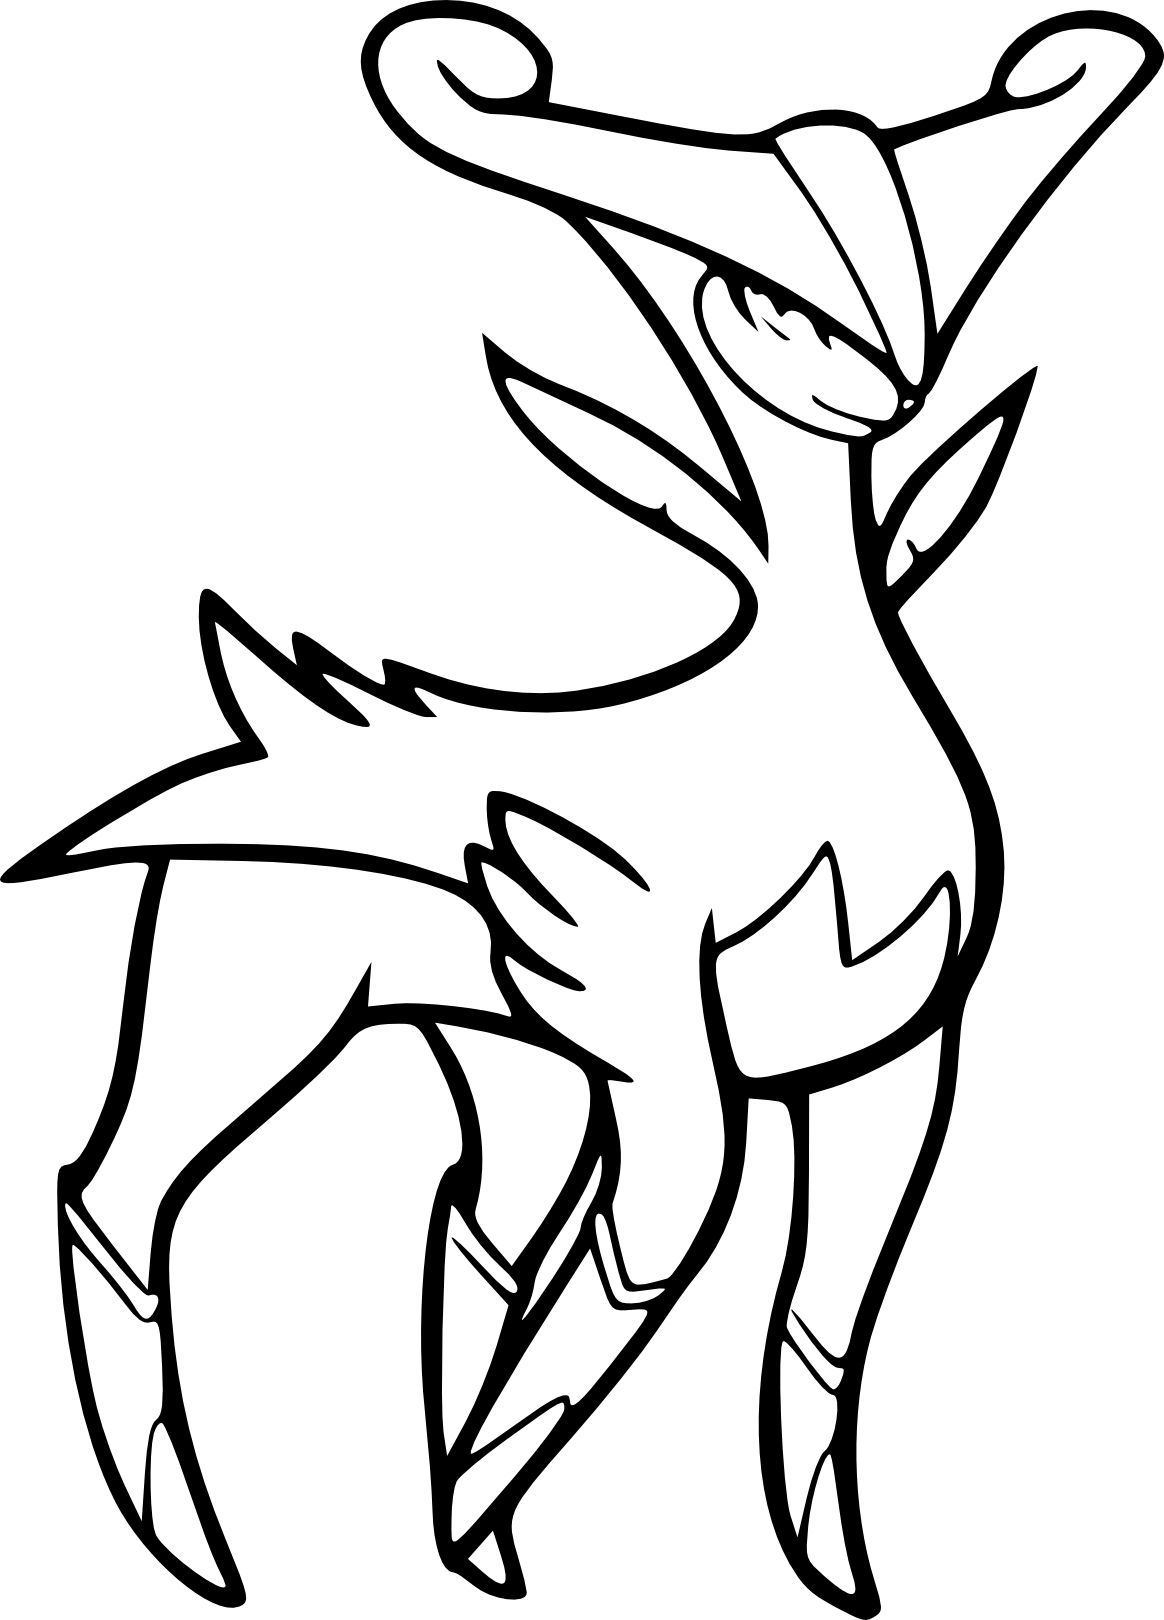 Play The Net Coloriage De Pokemon Legendaire Dessins En Noir Coloriage En Ligne Gratuit Coloriage Coloriage Pokemon